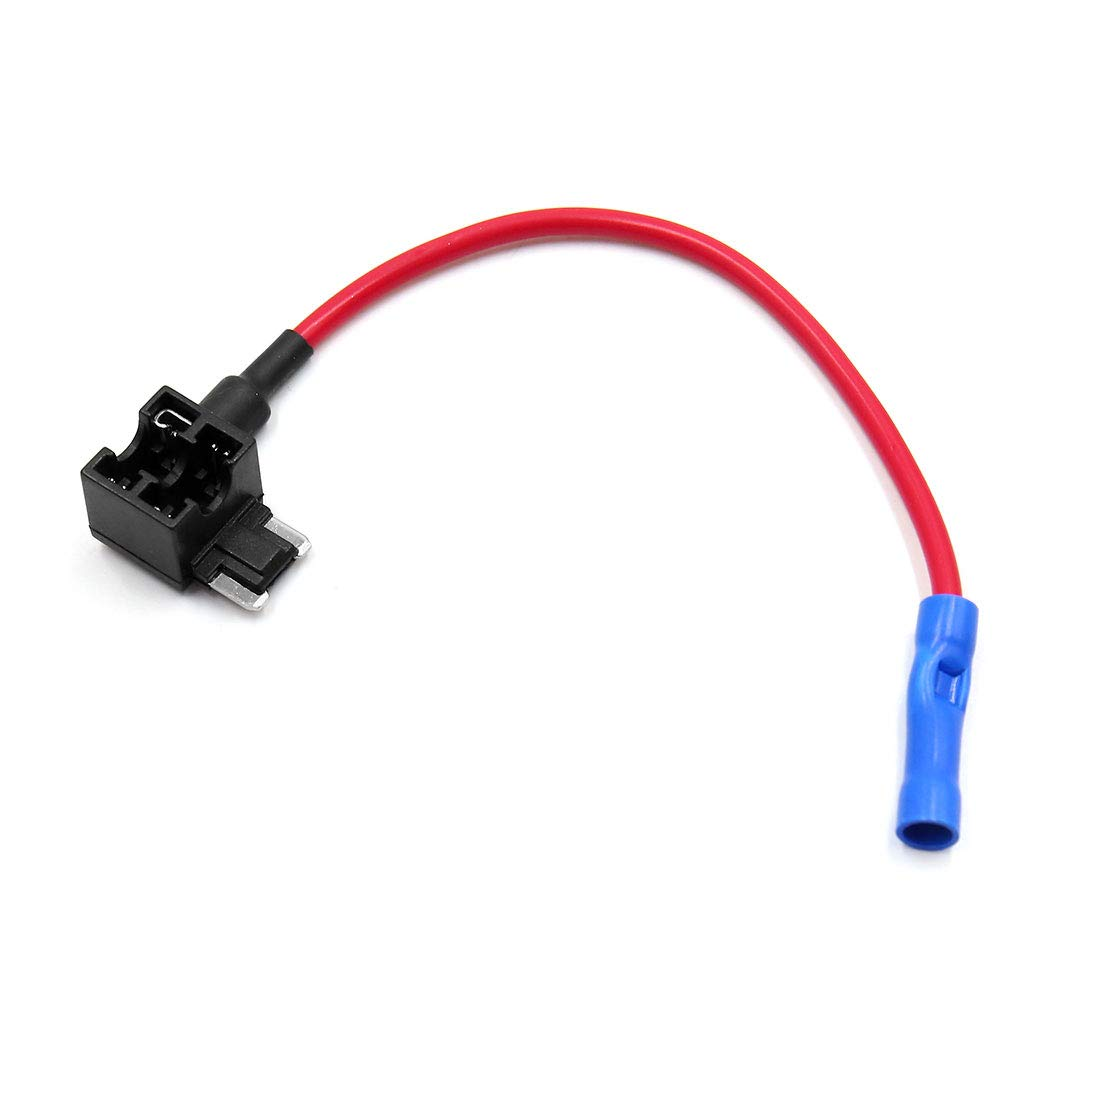 uxcell Car Add-A-Circuit 5A 10A 15A 20A 25A Low Profile Mini Blade Style Fuse Holder Tap